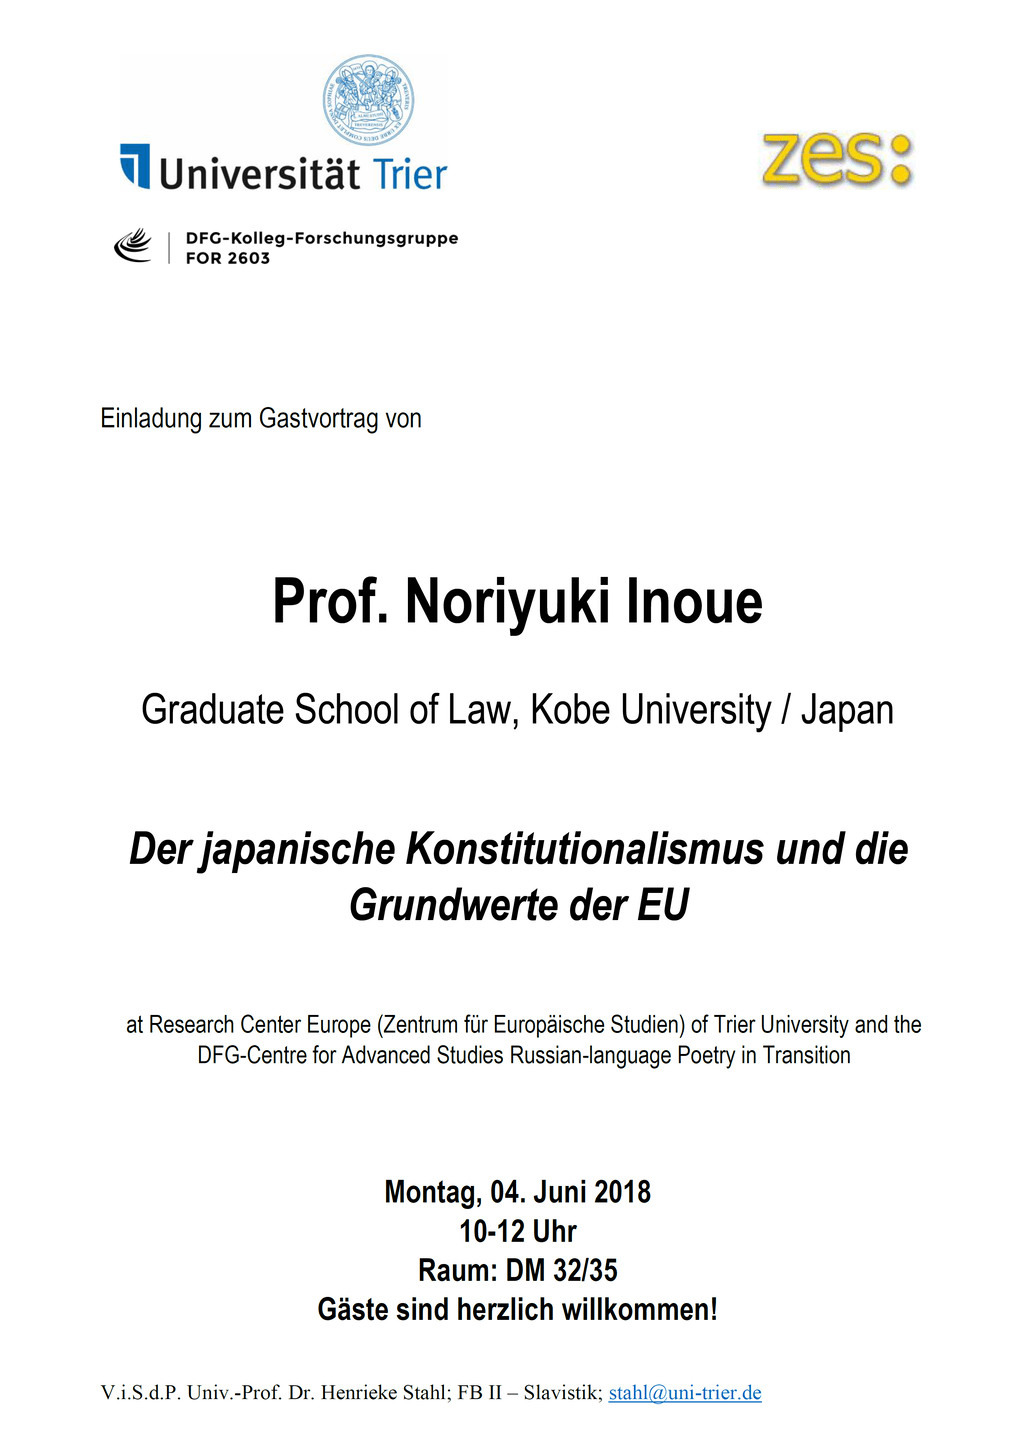 https://lyrik-in-transition.uni-trier.de/wp-content/uploads/2018/05/Plakat-Inoue-bild.png